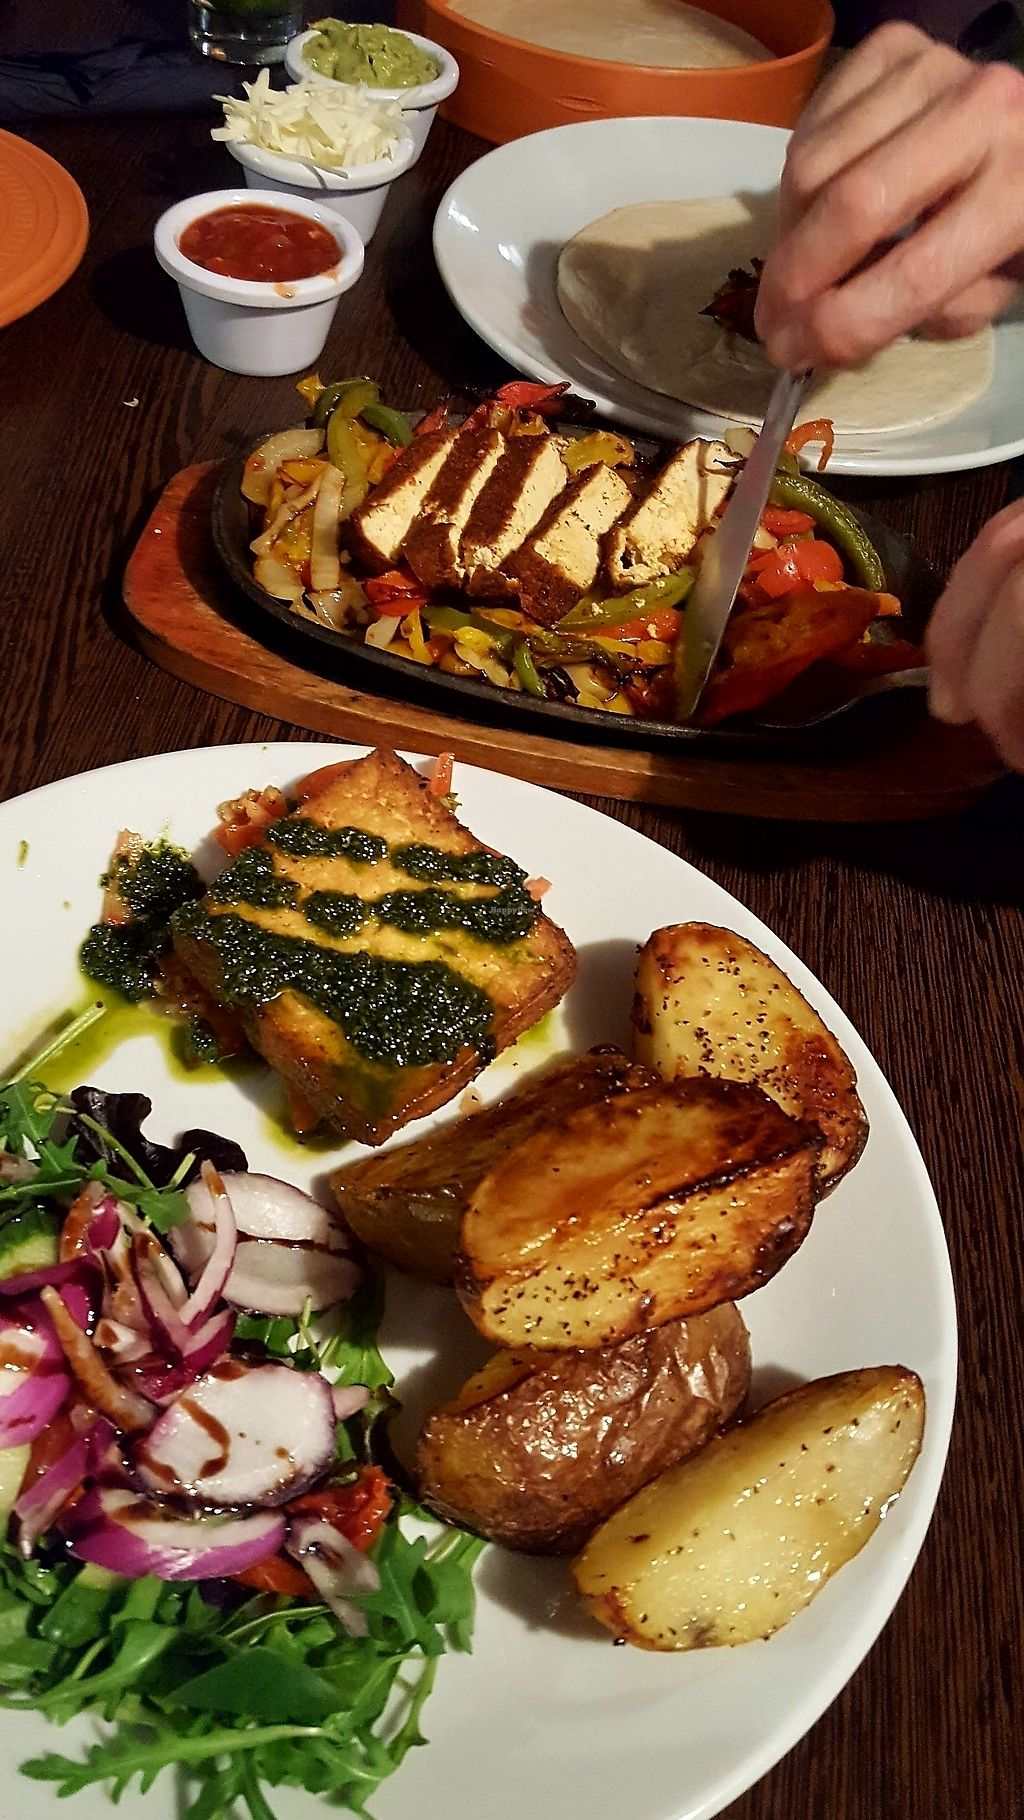 "Photo of Rock Garden  by <a href=""/members/profile/VeganAnnaS"">VeganAnnaS</a> <br/>Marinated tofu with salsa verde and tofu fajitas <br/> January 4, 2018  - <a href='/contact/abuse/image/101055/343028'>Report</a>"